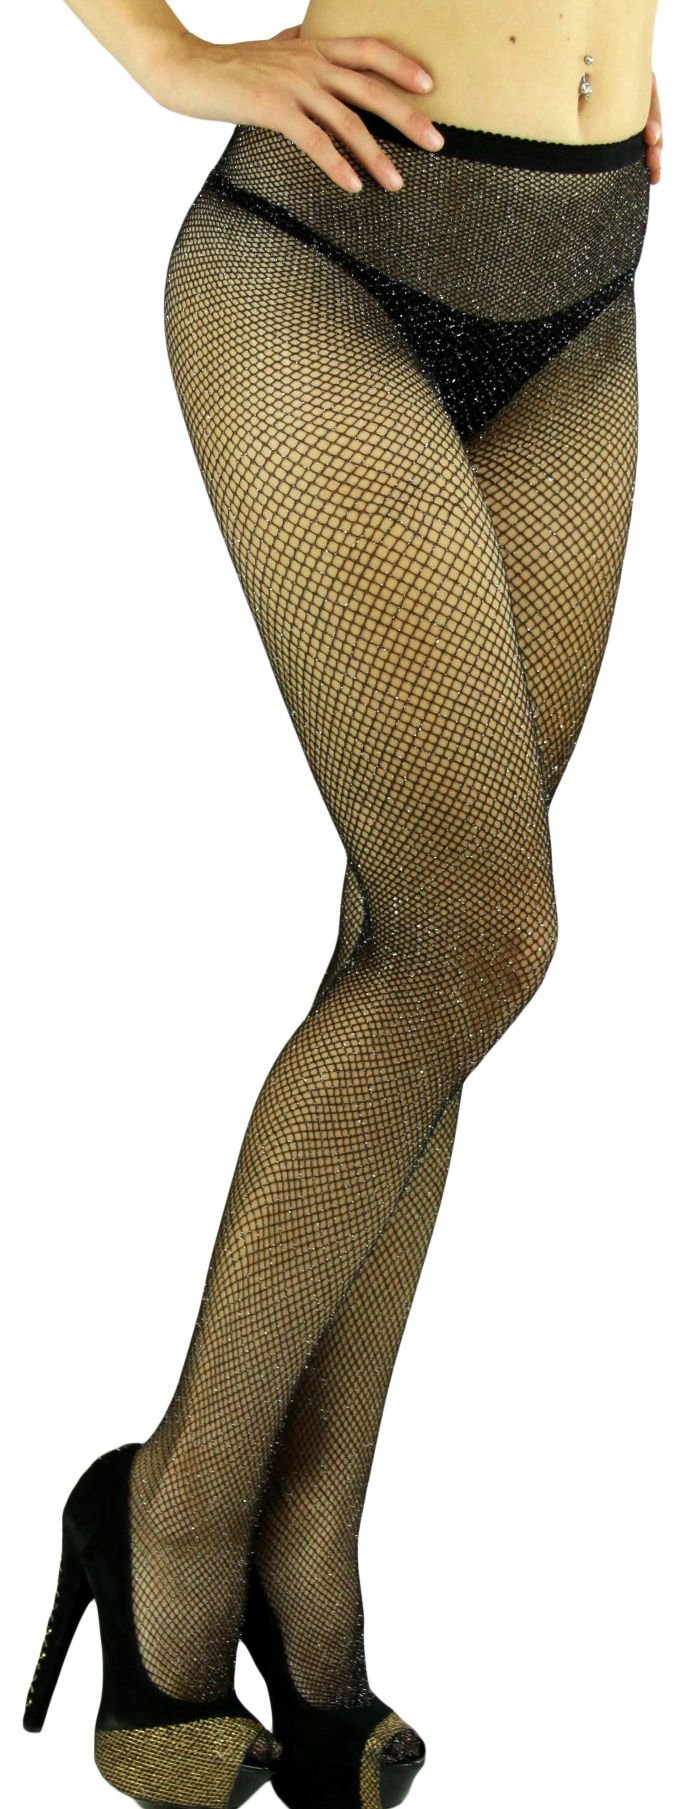 ToBeInStyle Women's Spandex Seamless Glittery Fishnet Pantyhose Tights Hosiery (Black with Silver Glitter)